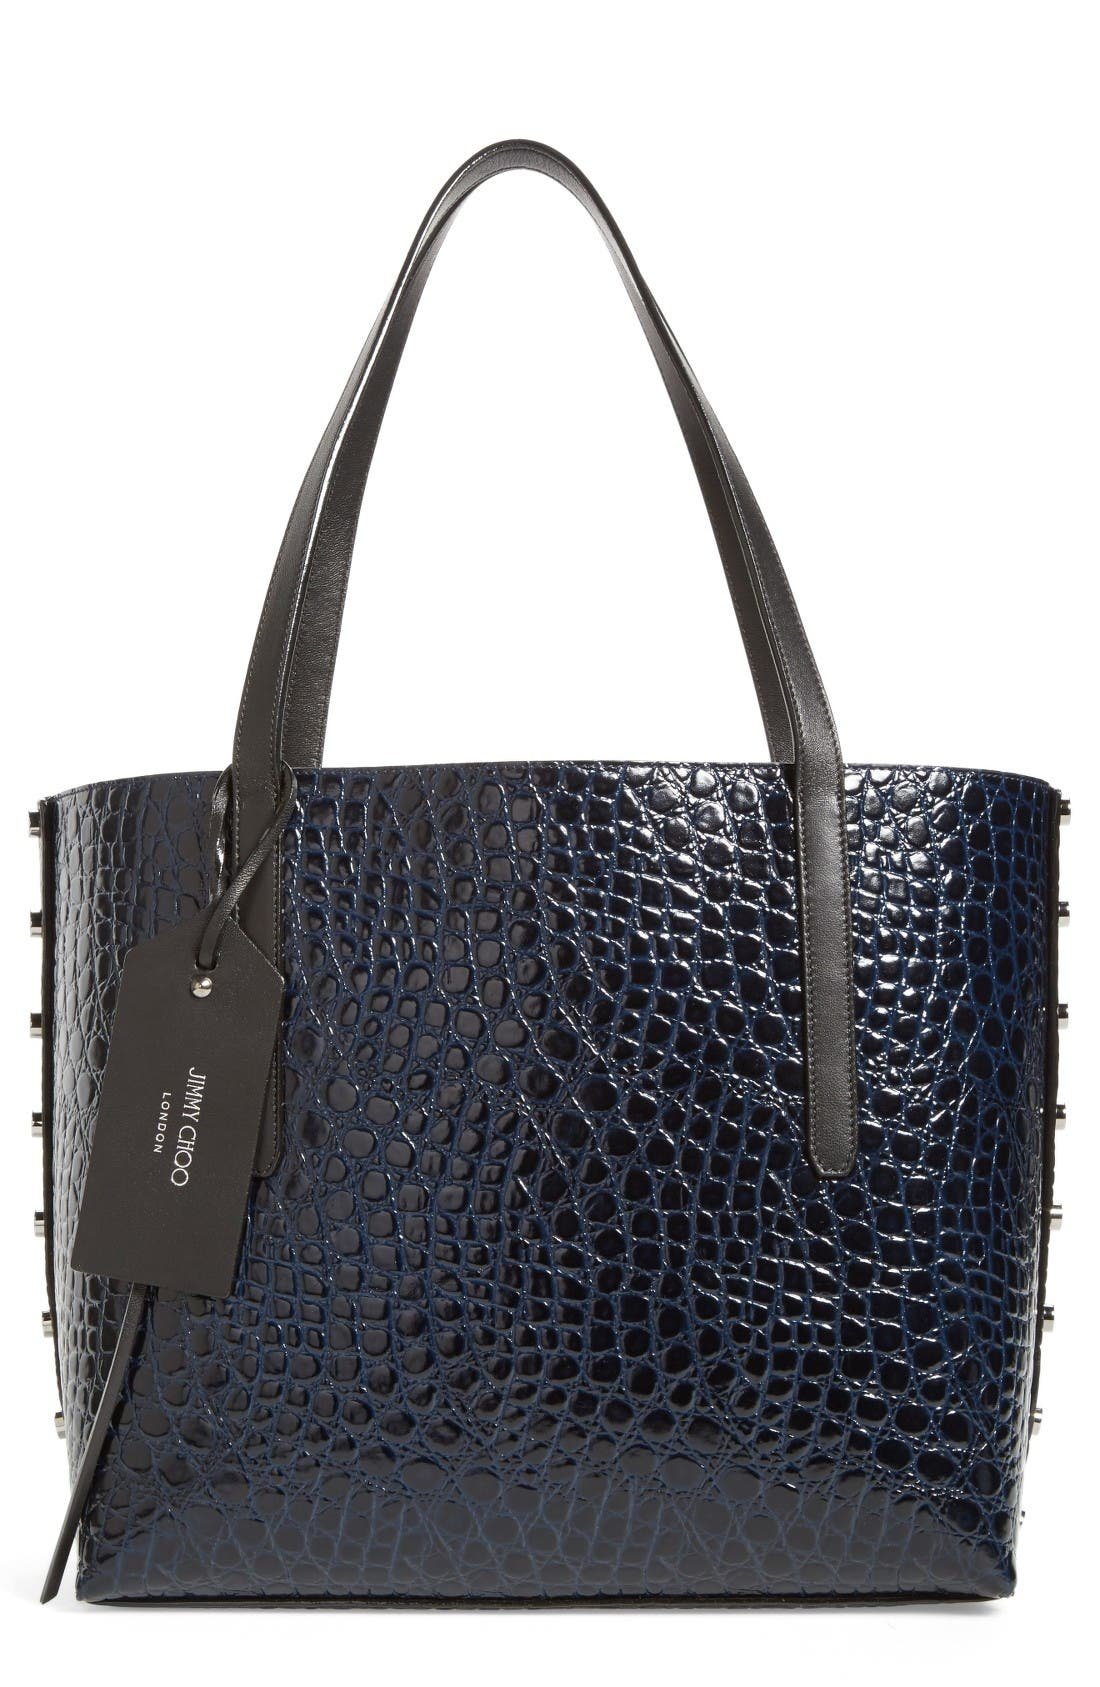 Alternate Image 1 Selected - Jimmy Choo Twist East West Leather Tote